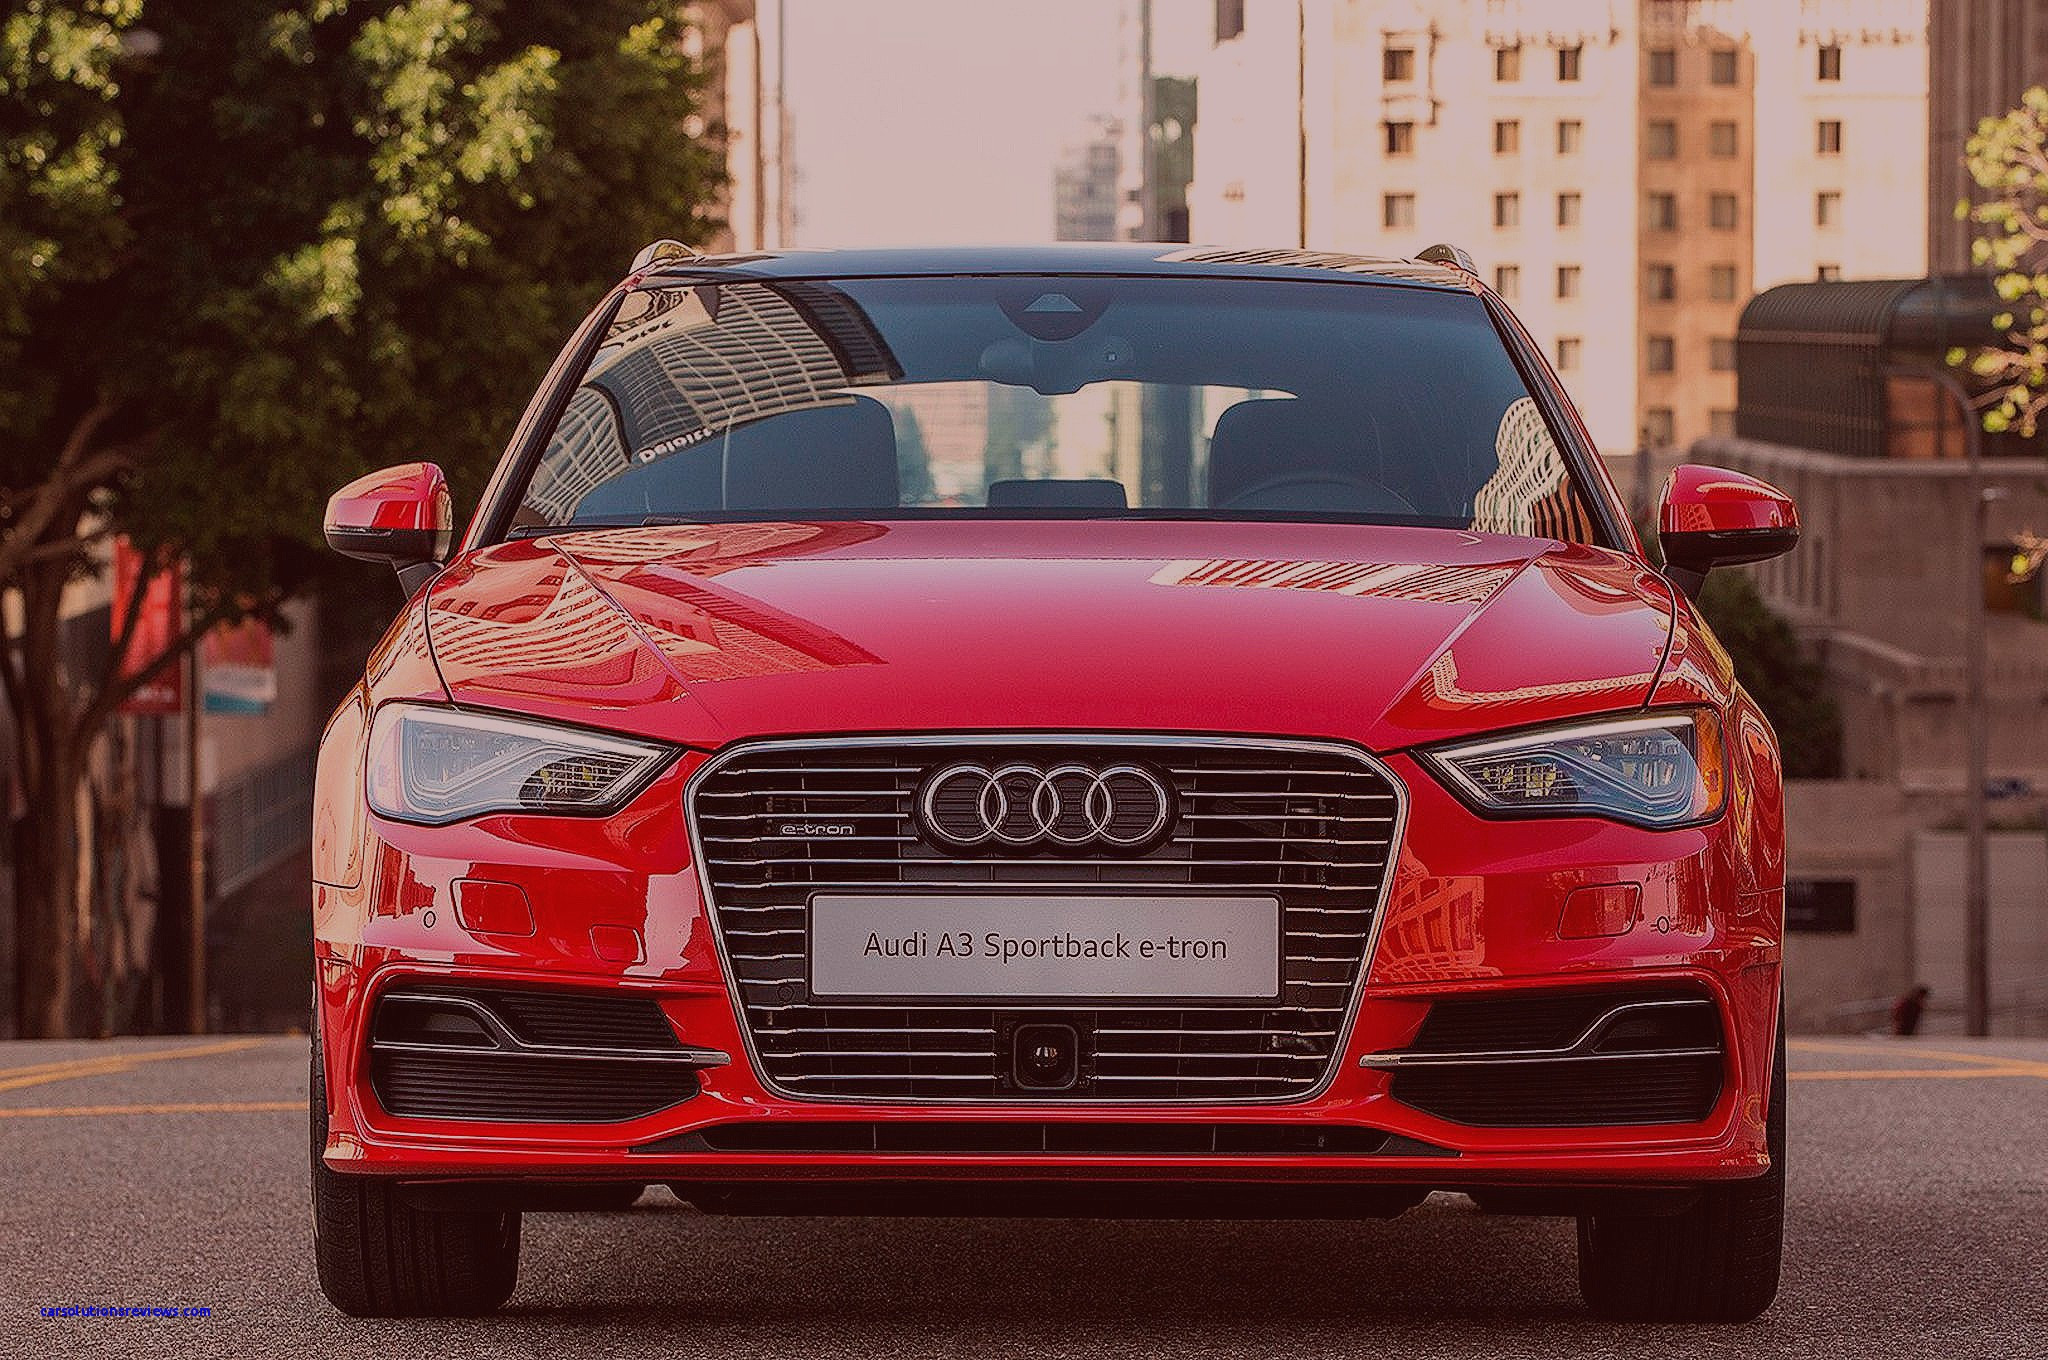 Used Cars In Ri Best Of Used Cars In Ri Awesome Best Used Audi Ri – Ingridblogmode